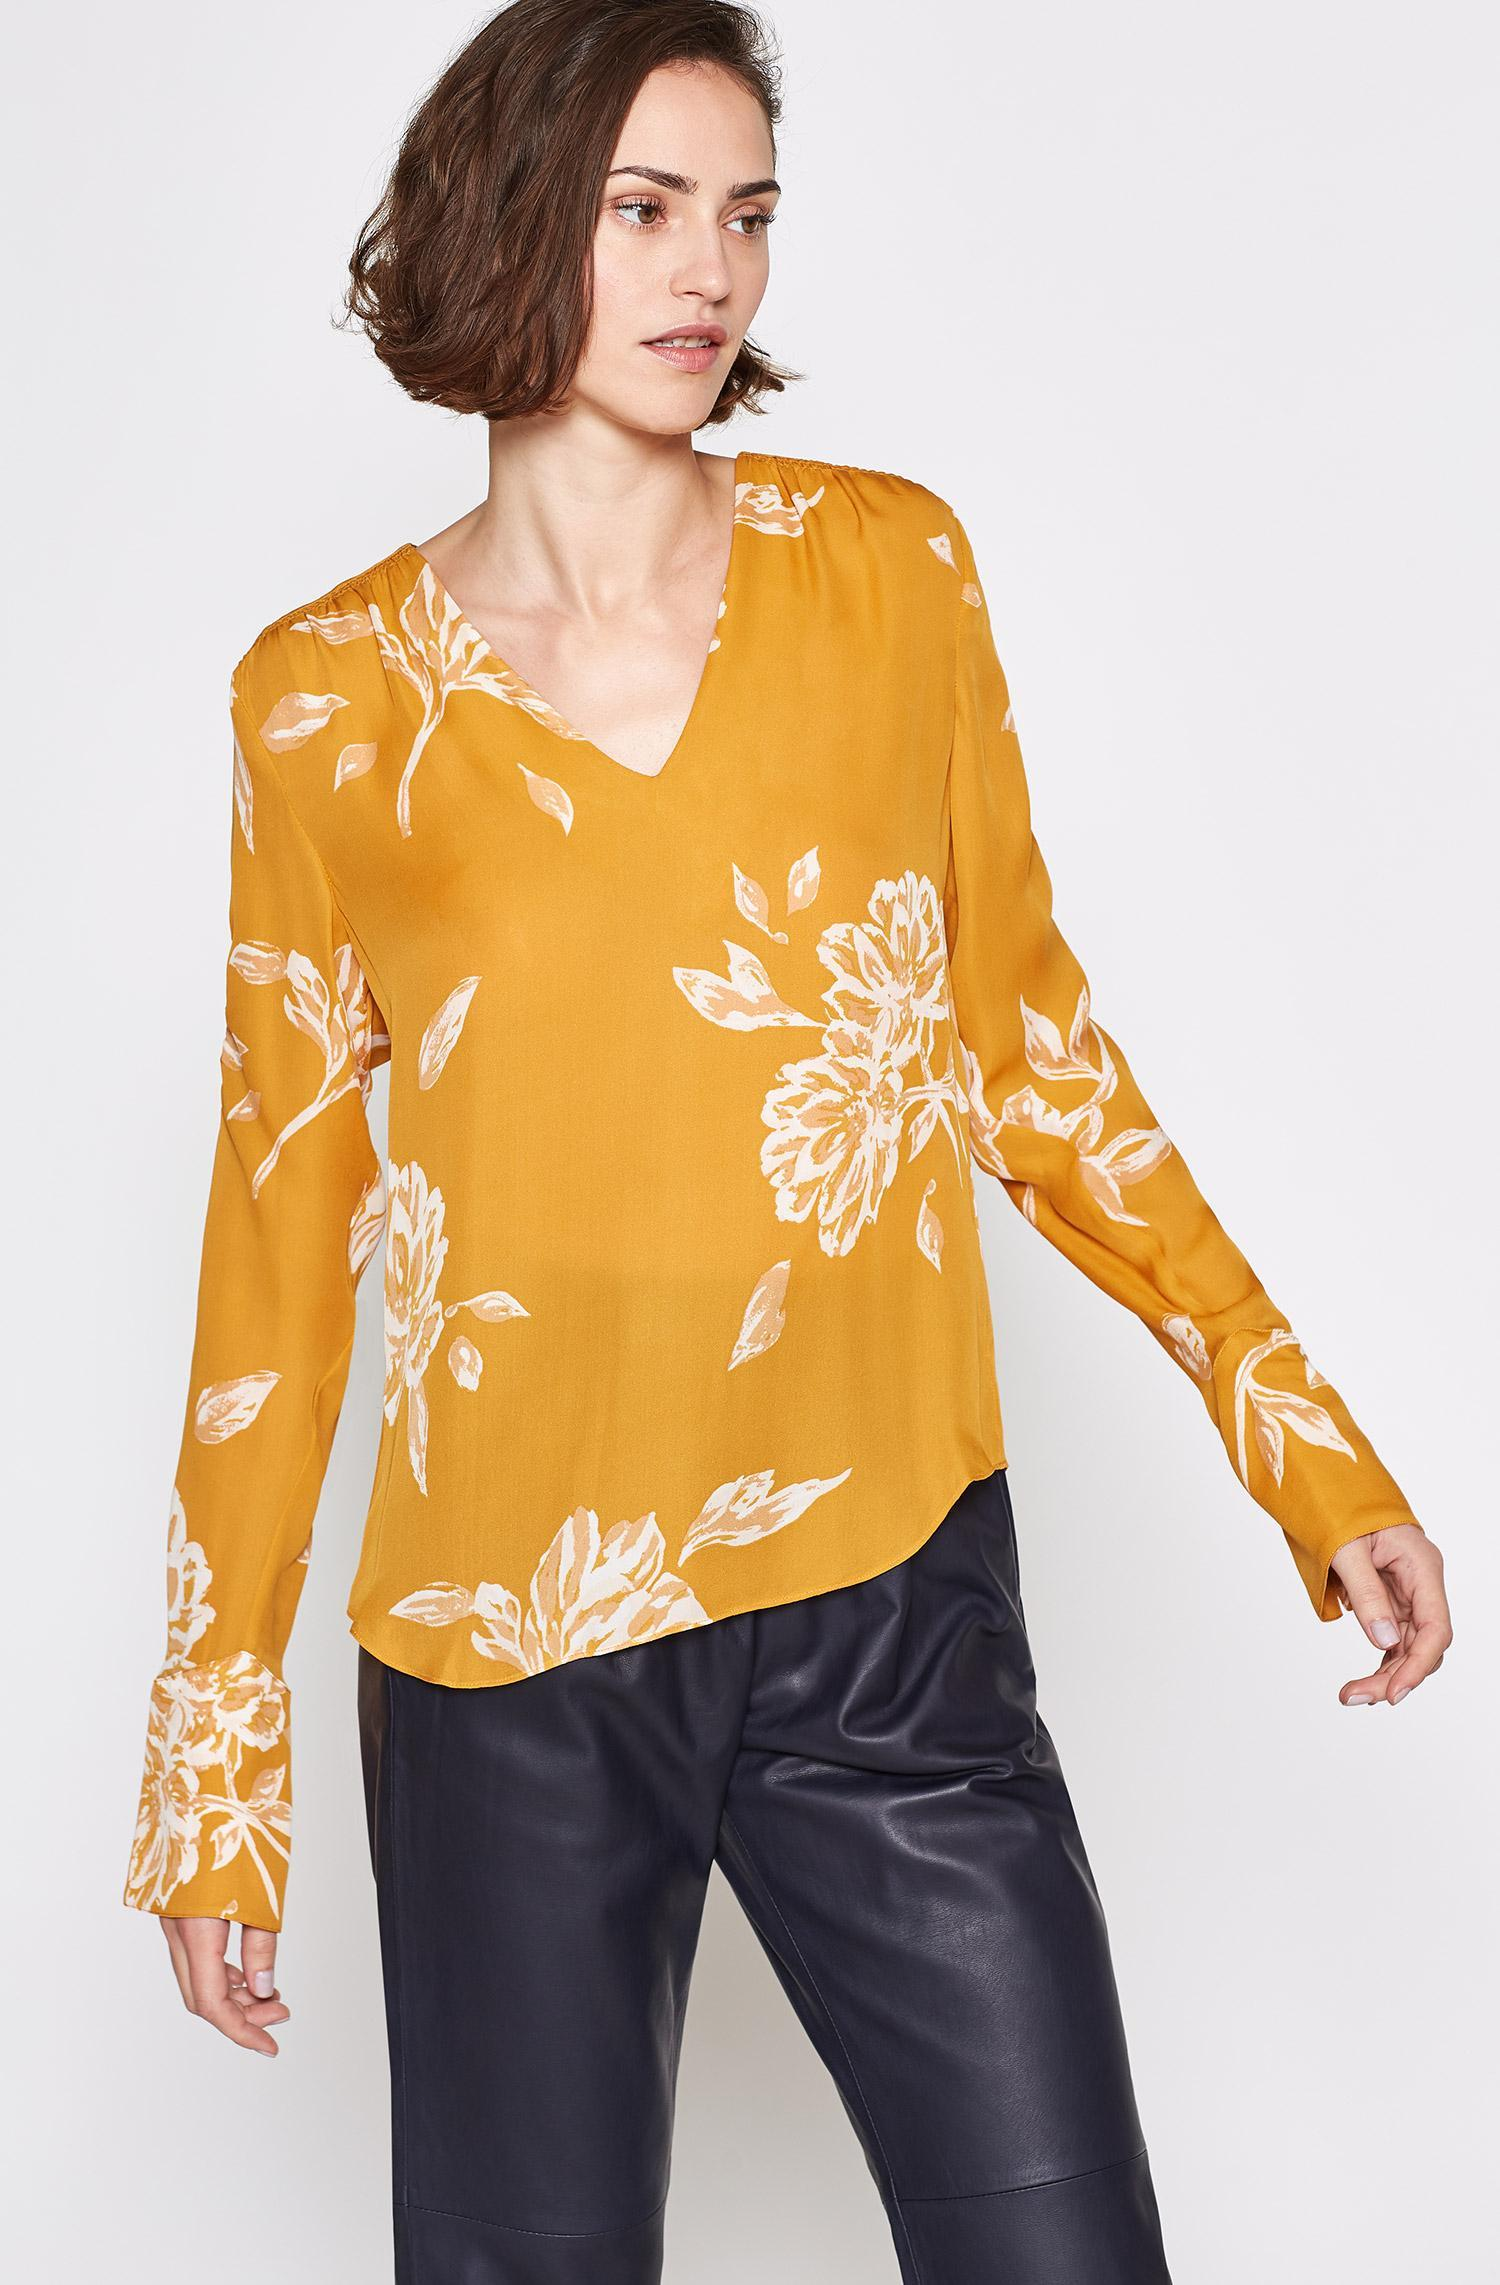 6d39dc1918824 Joie - Multicolor Galvin Silk Top - Lyst. View fullscreen